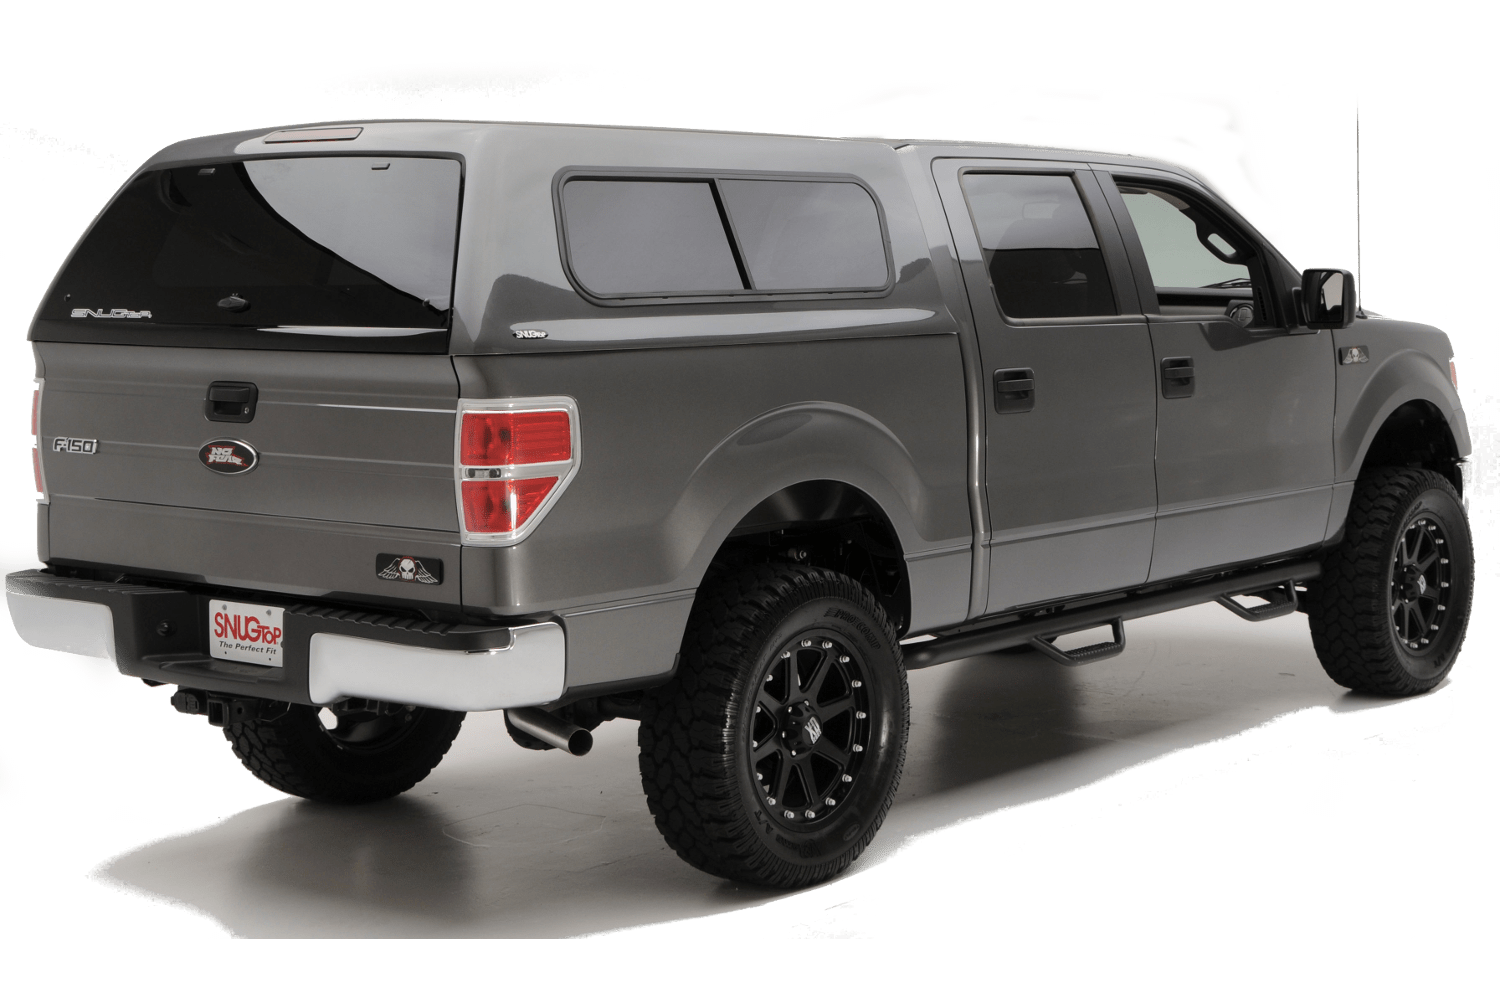 snugtop fiberglass camper shells ford f-150 rebel